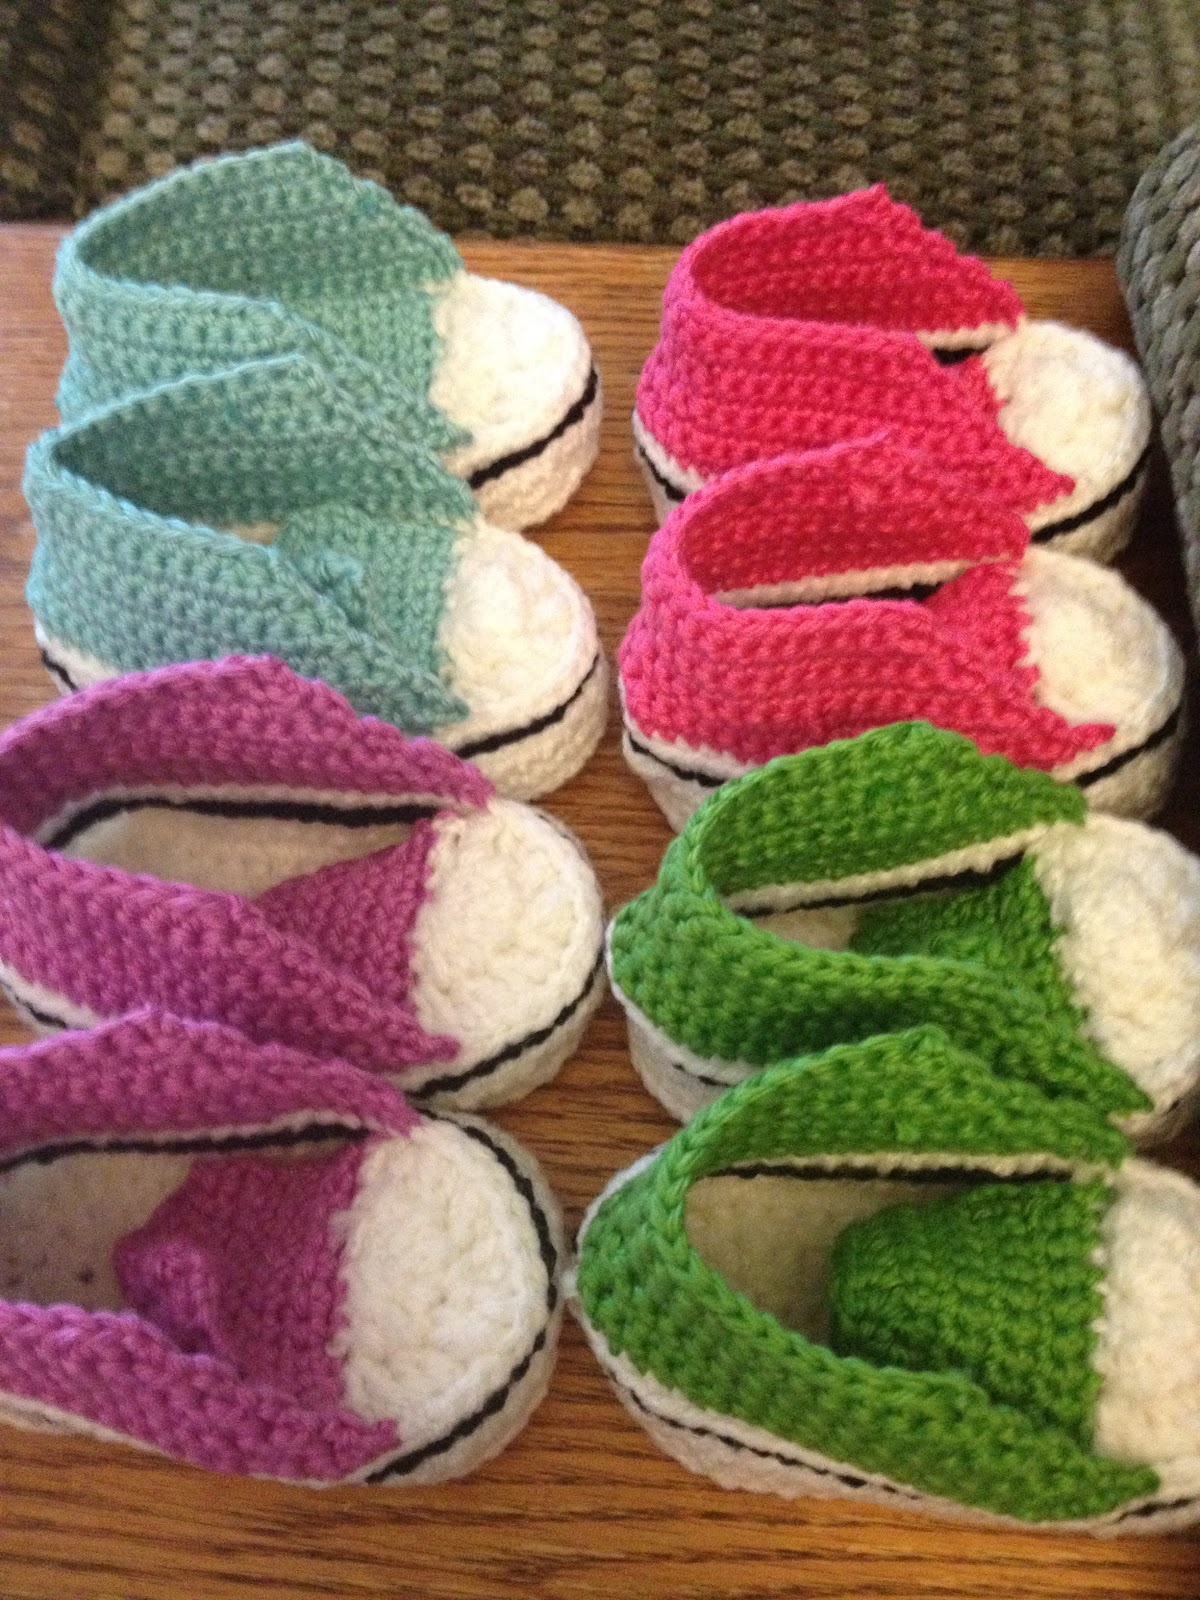 Free Crochet Pattern Converse Shoes : Grannys Creative Creations: Crochet Baby Converse!